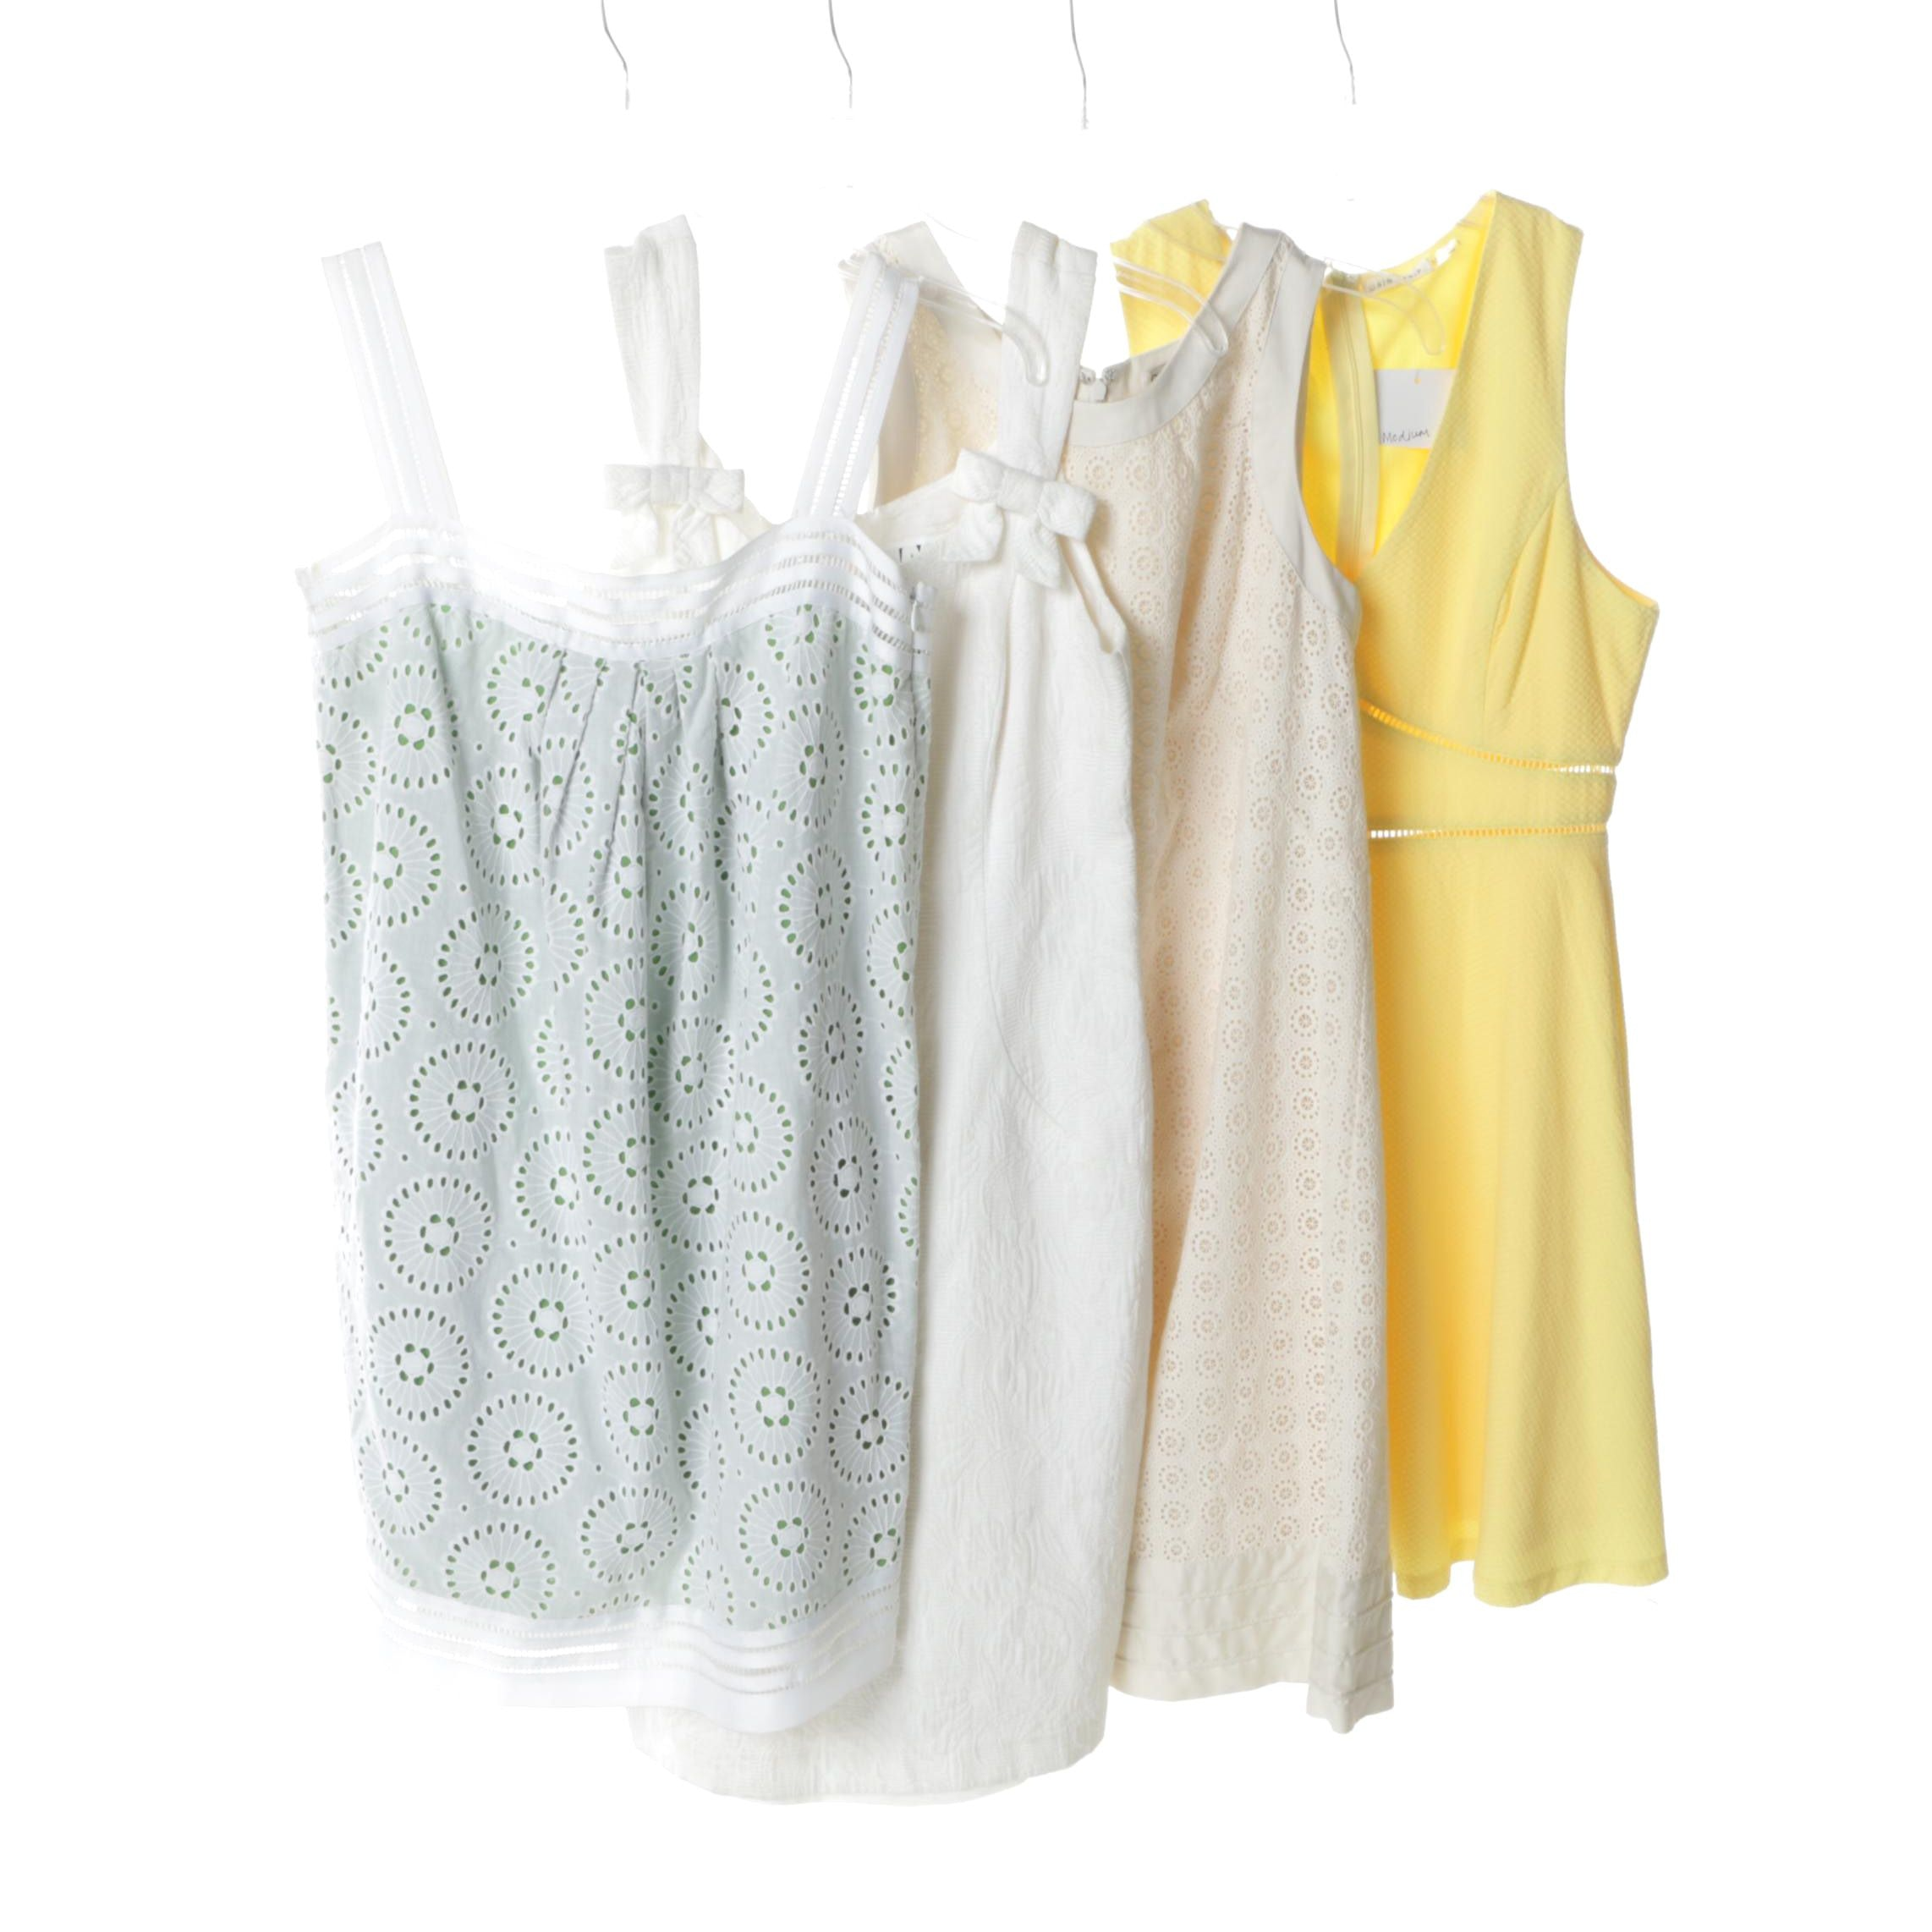 Women's Summer Dresses and Tunics Including David Meister